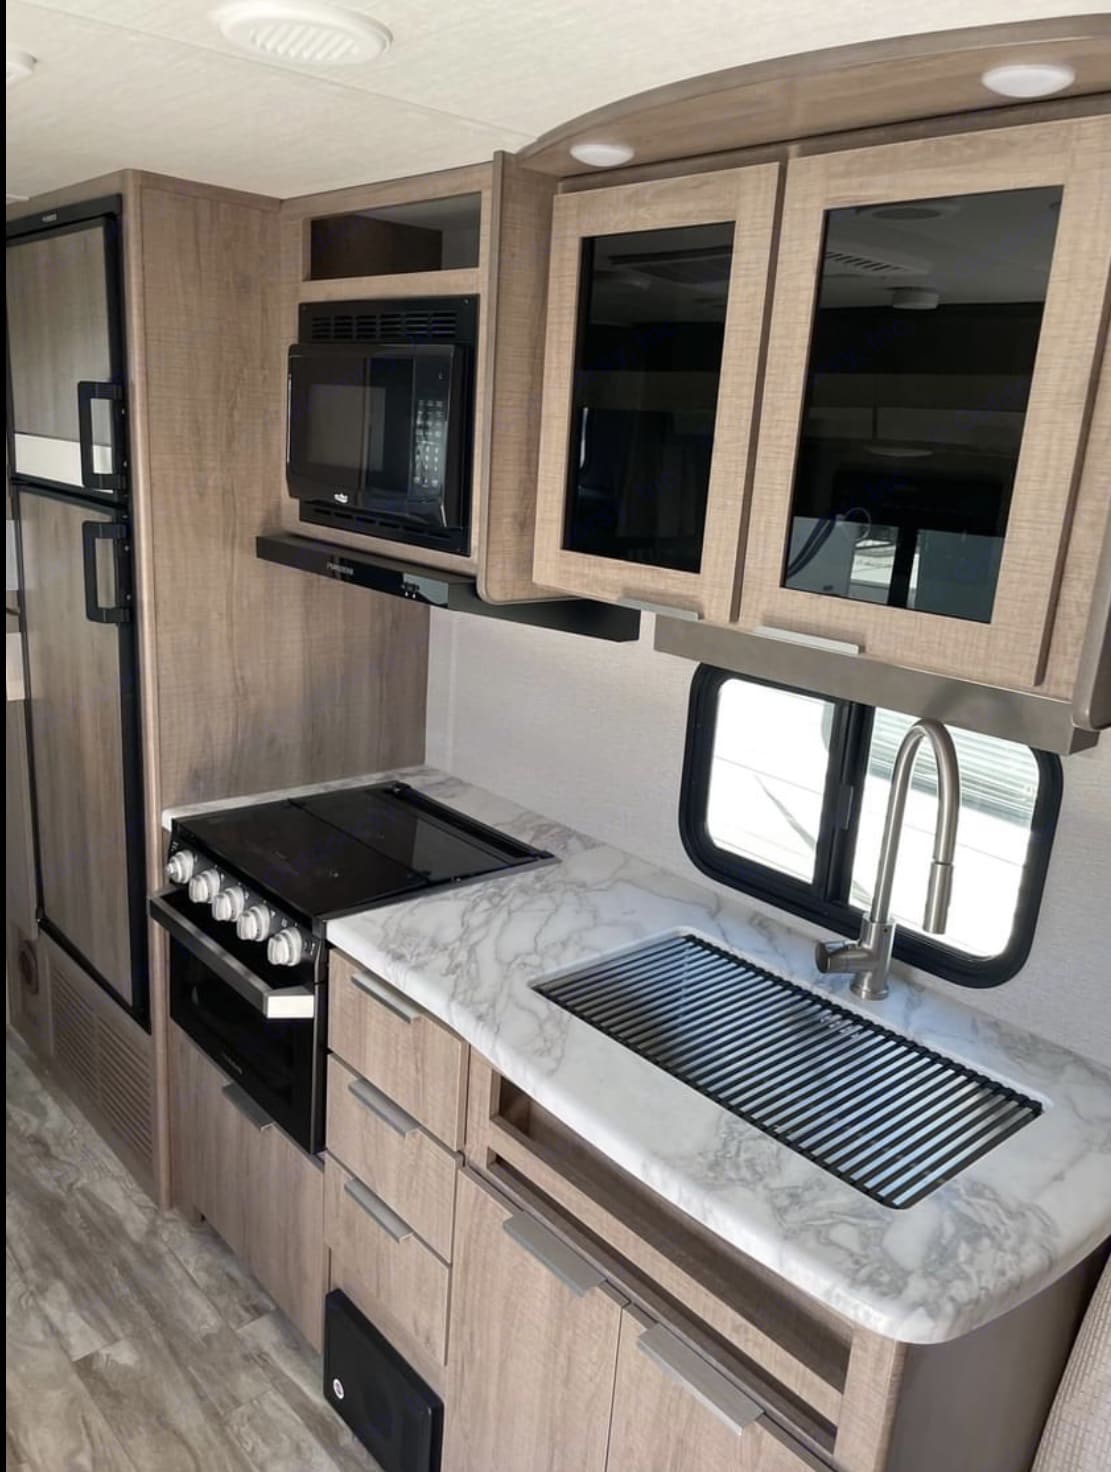 Kitchen with stove oven microwave refrigerator and freezer and audio controls above sink . Grand Design 21BHE 2021